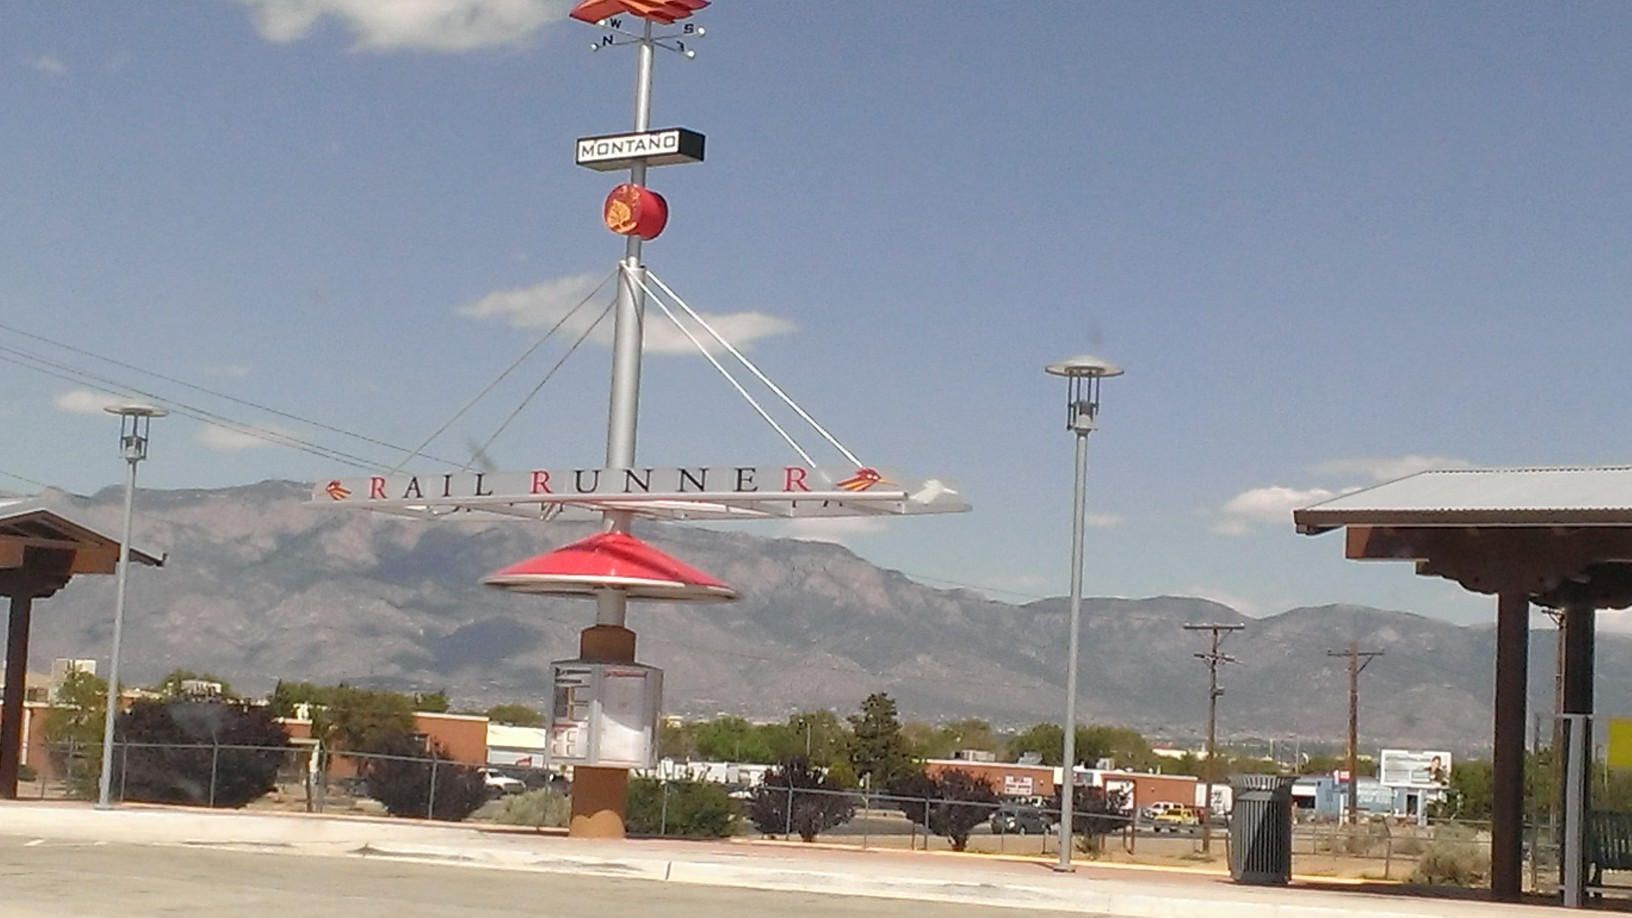 Montano RailRunner is open for Business for the busy West Side of Abq